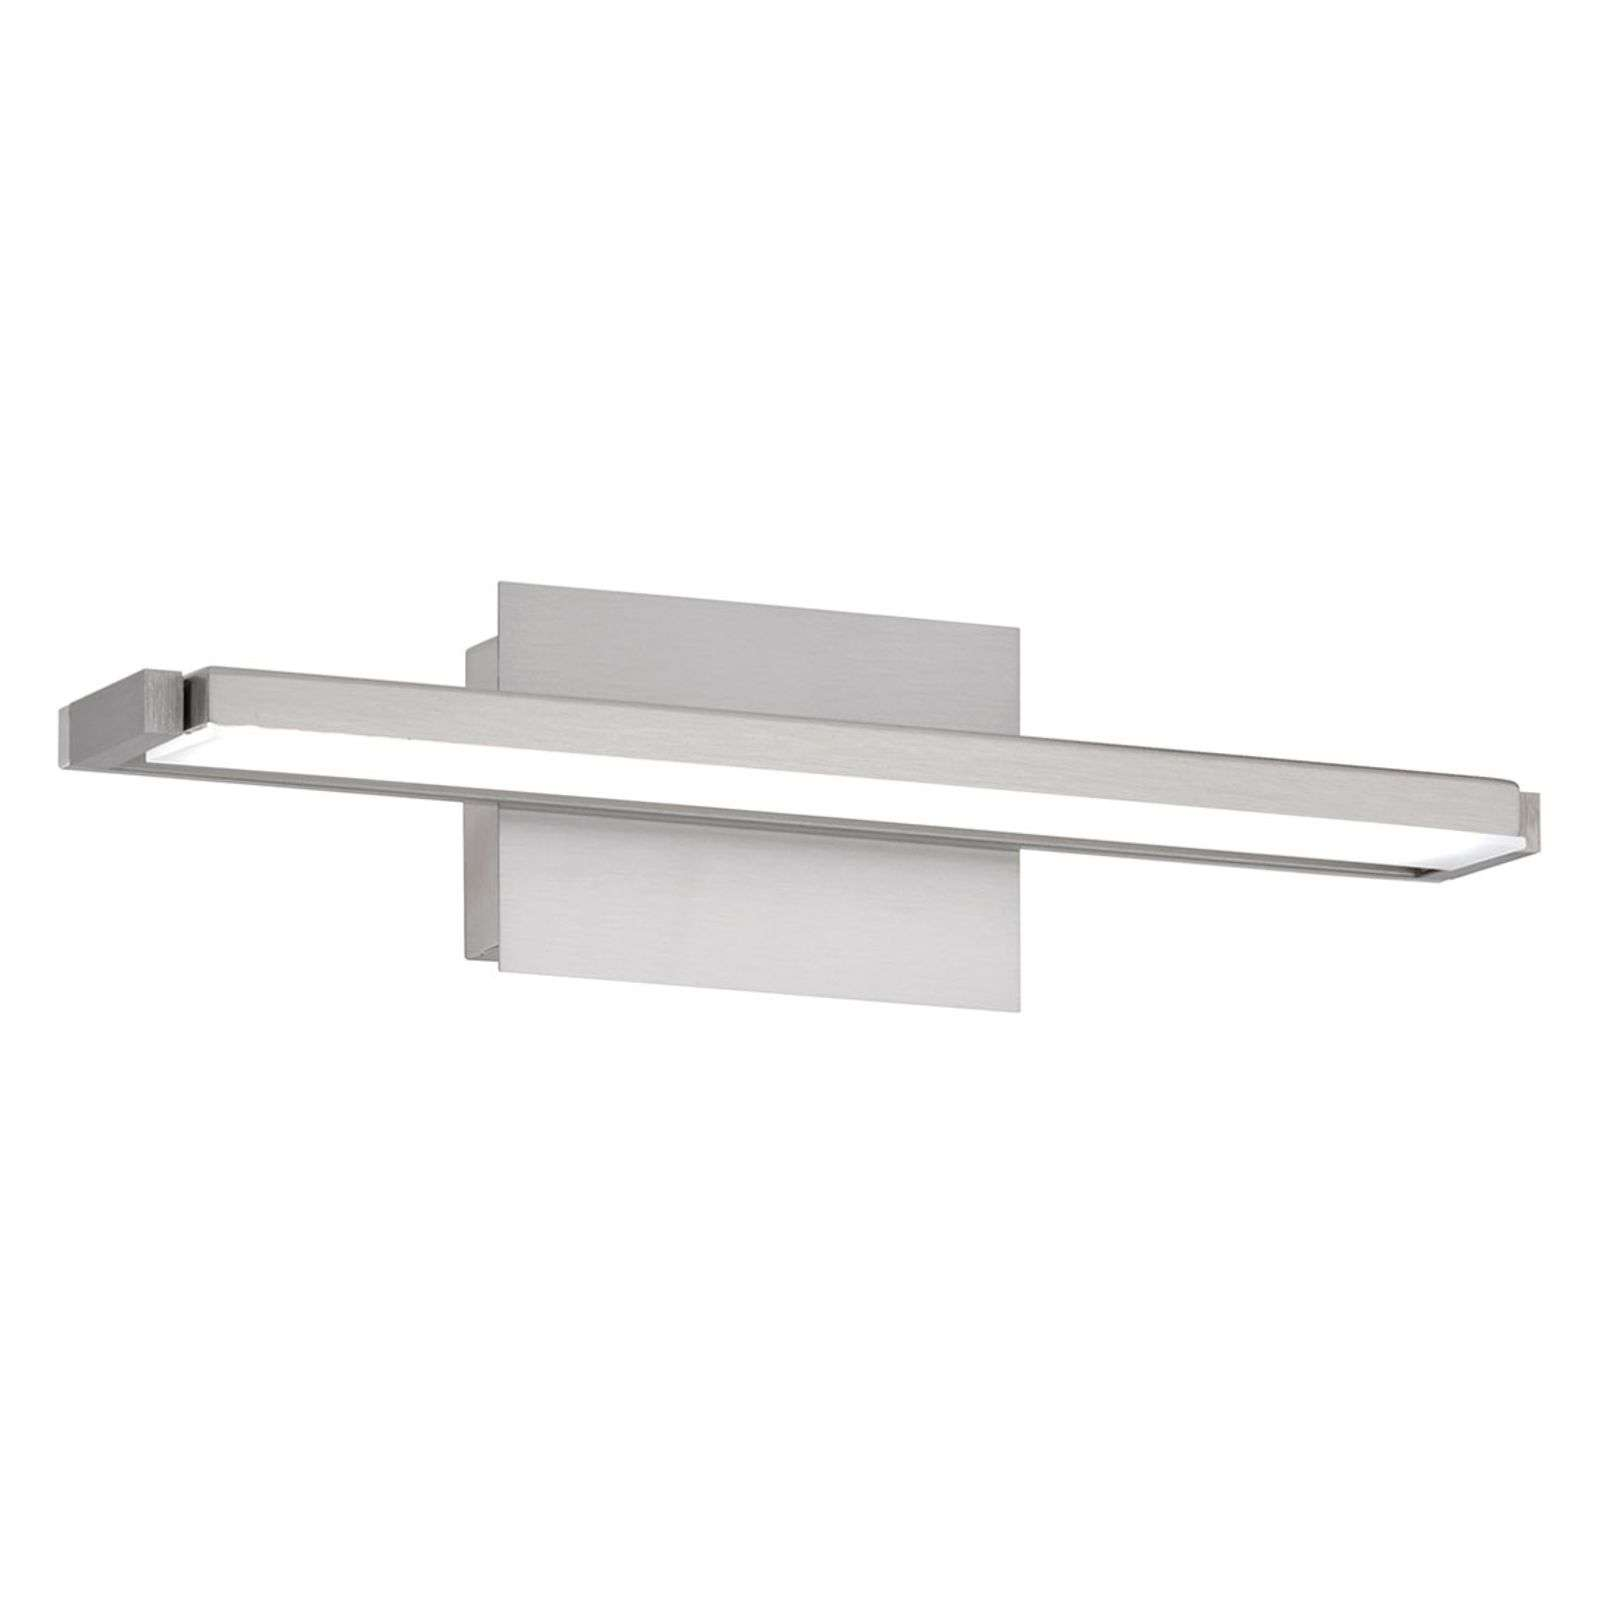 Applique LED Pare TW, 3 tonalità + dimmer 40cm